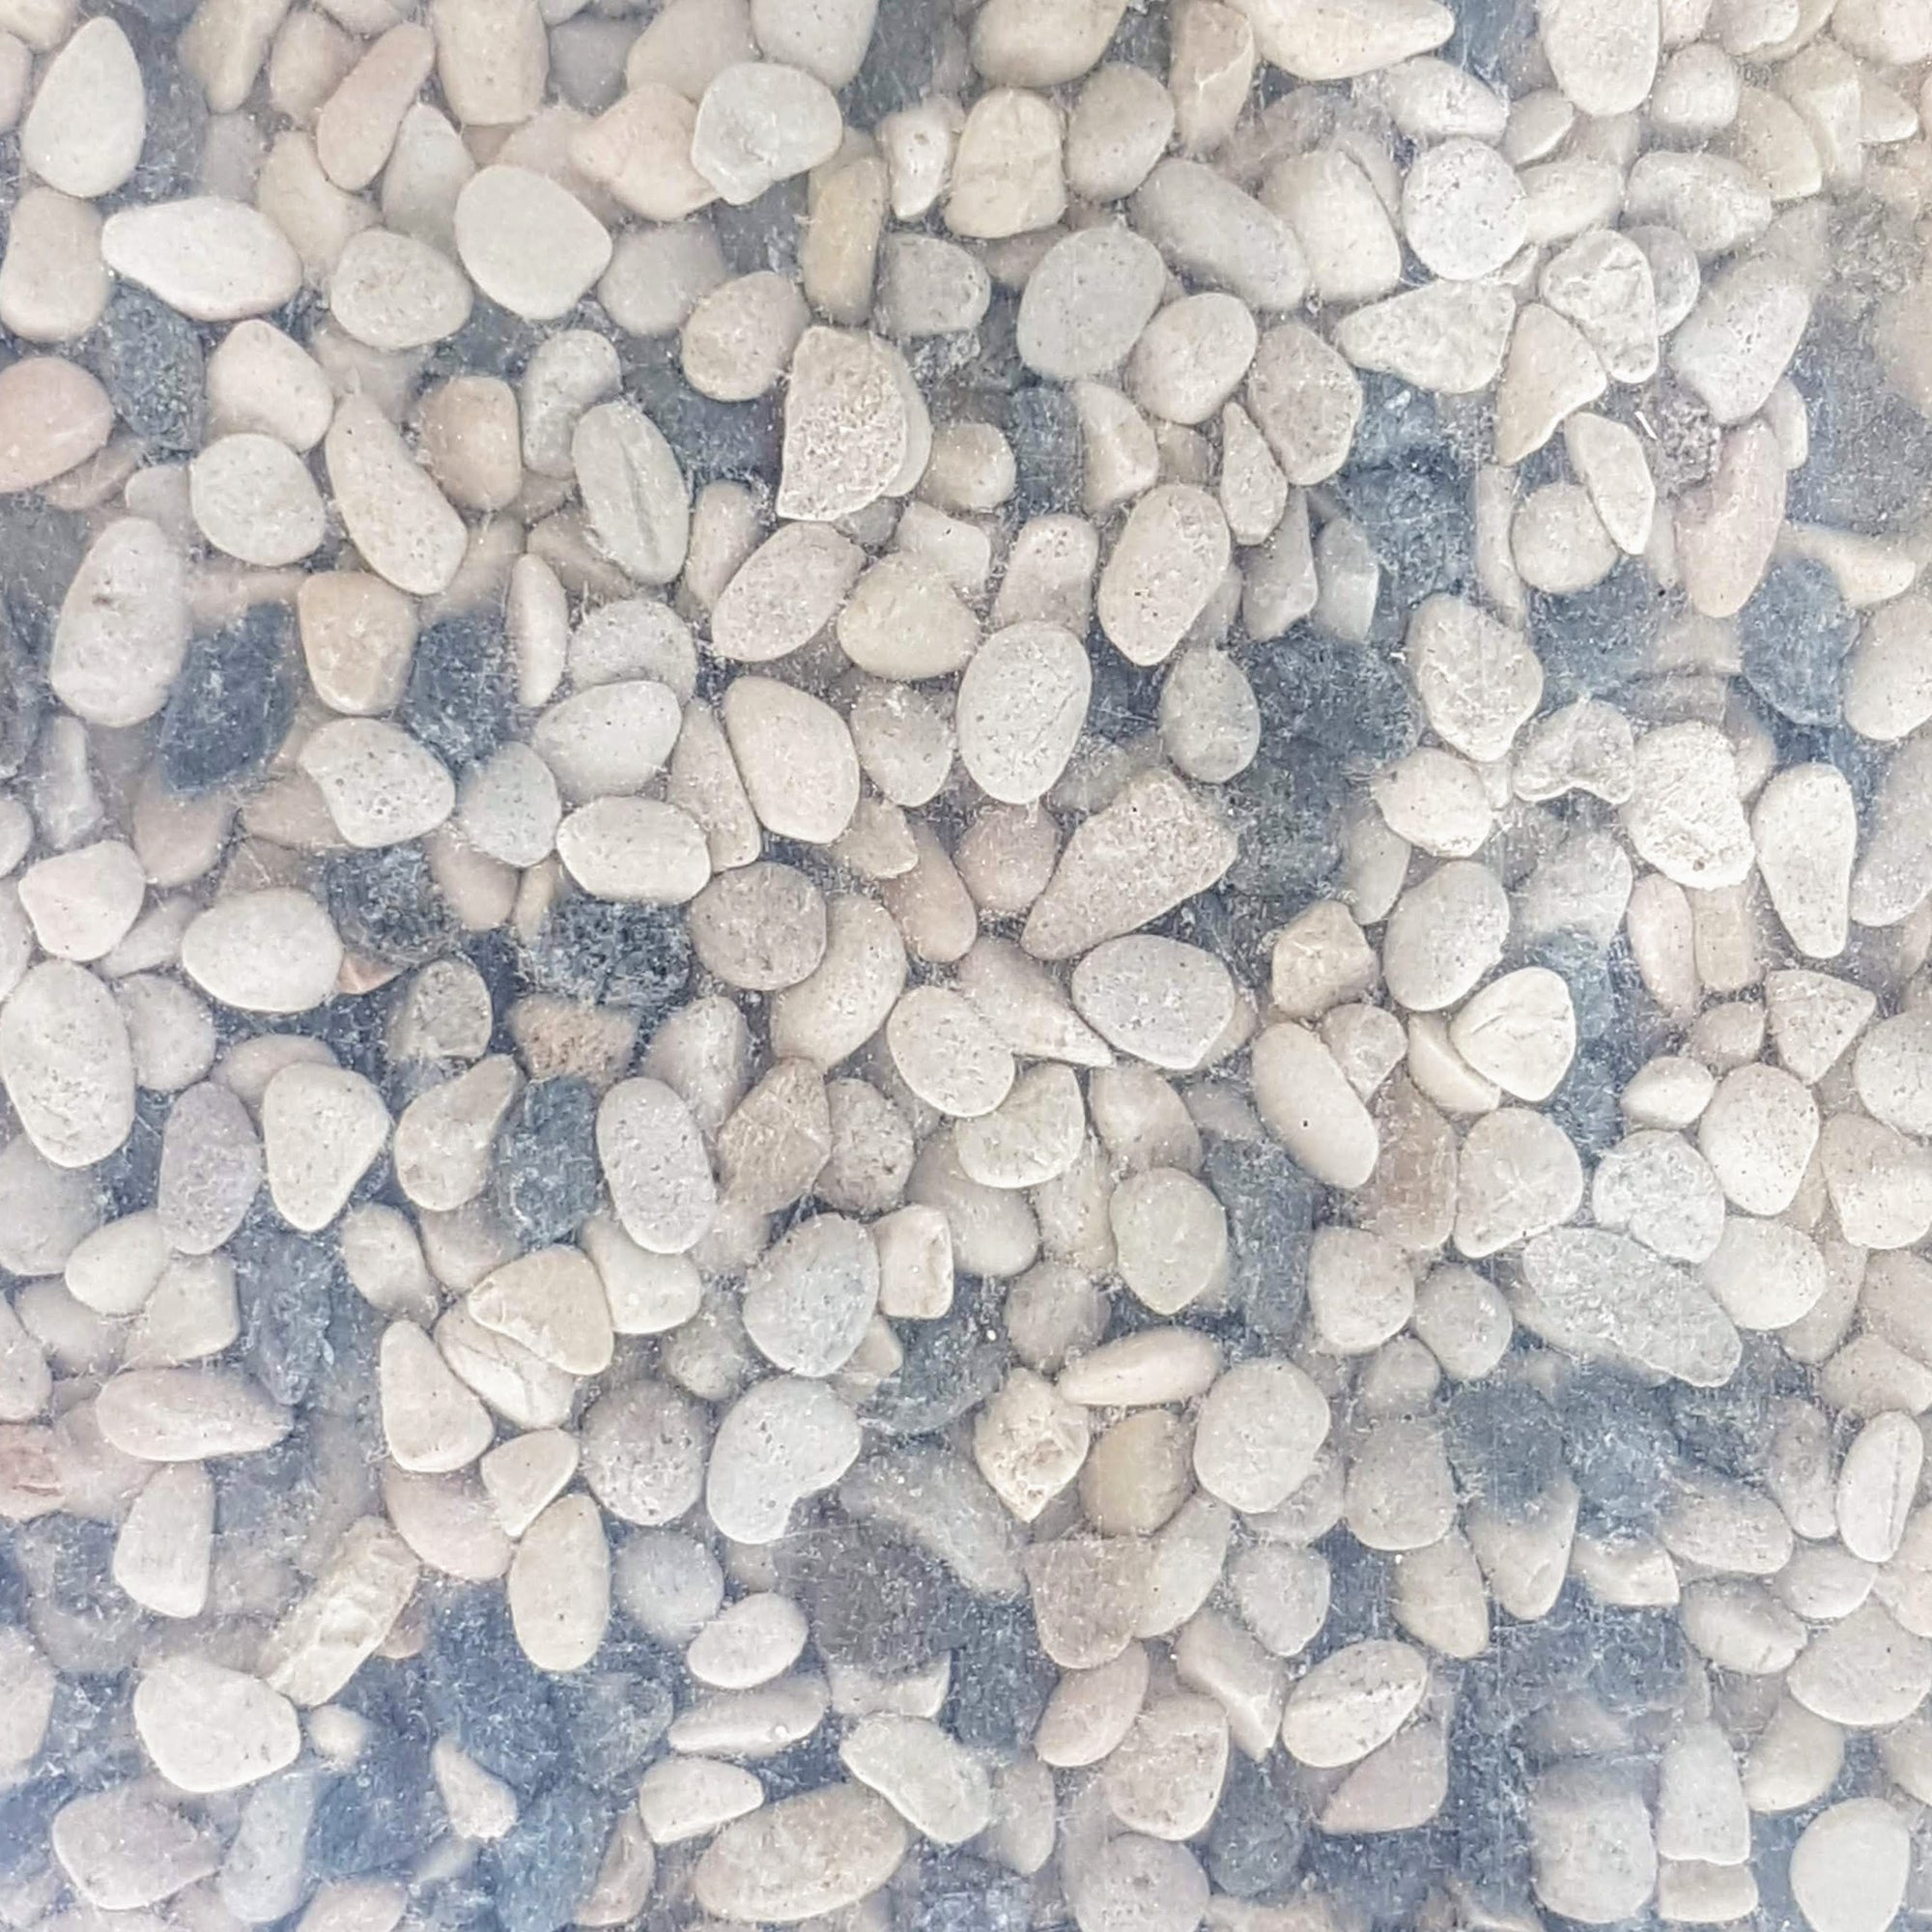 Pond Gravel (washed) 20kg Bag